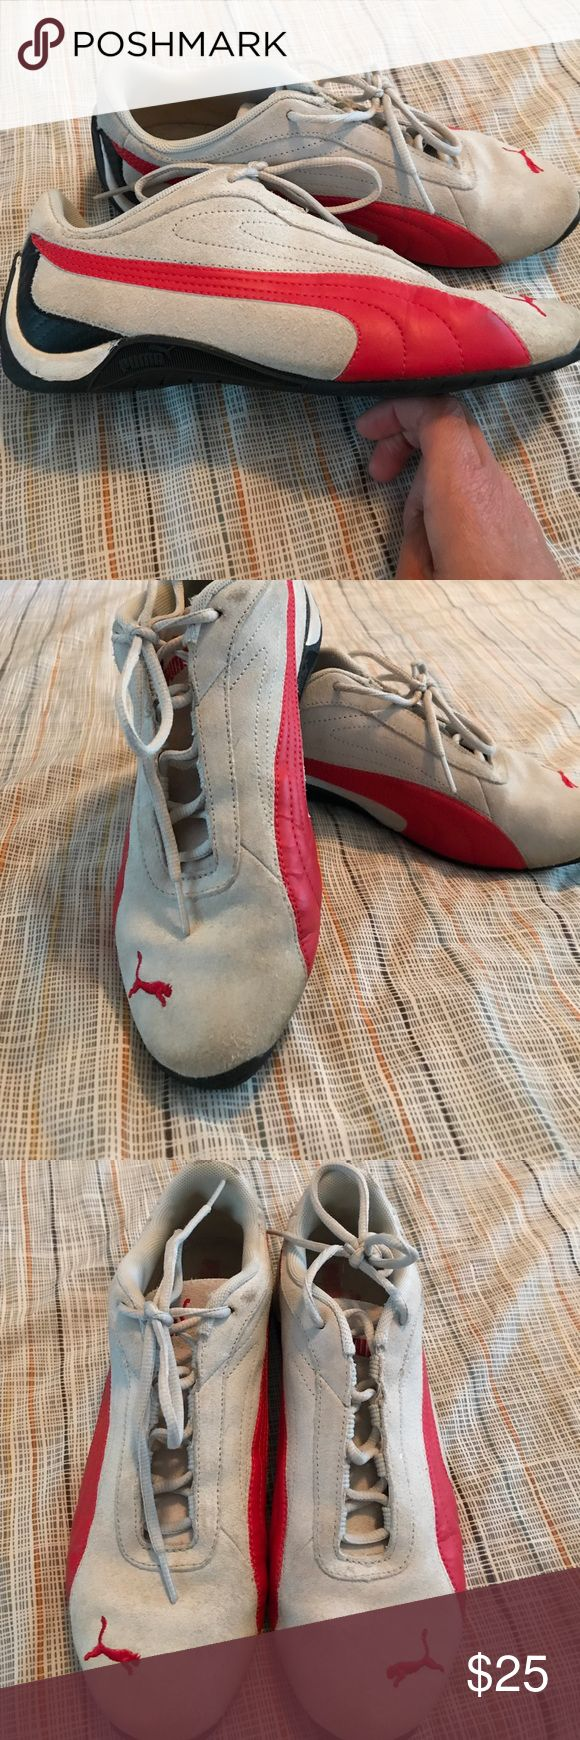 Puma Shoes Pluma gray and red shoes EUR 38 and US 8 Puma Shoes Athletic Shoes